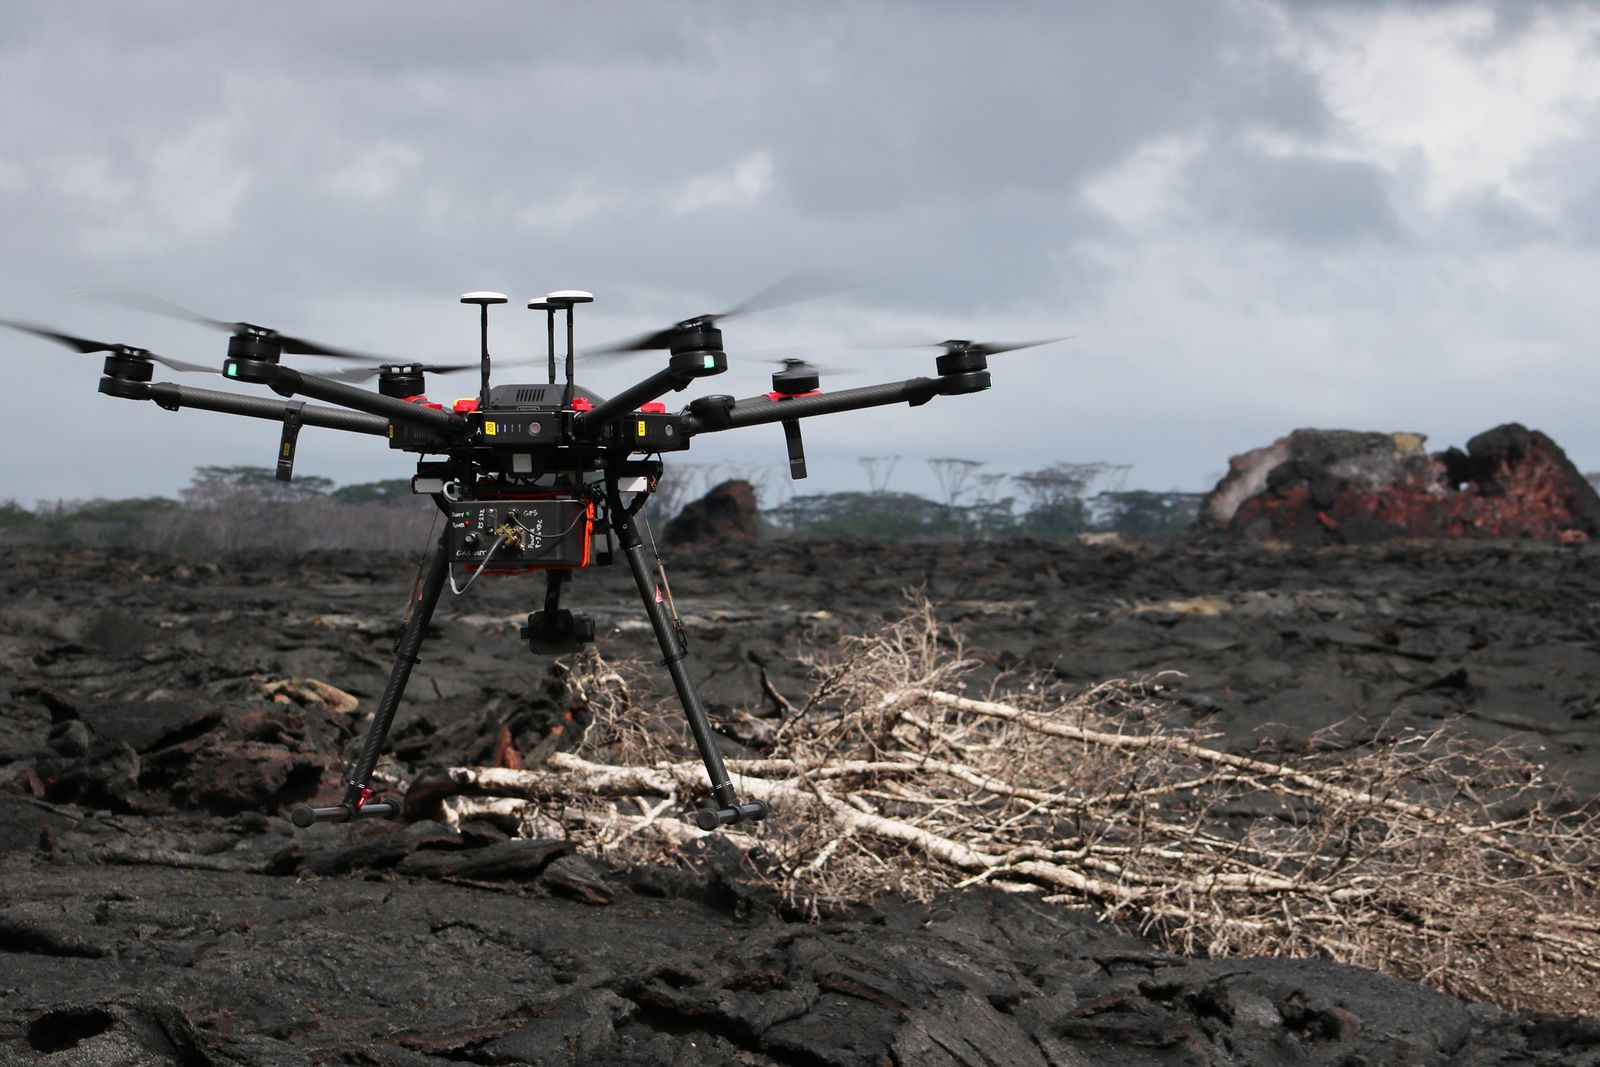 Kilauea East rift zone - measurement of gas emissions by a drone near the cone on fissure 21 - Doc. USGS